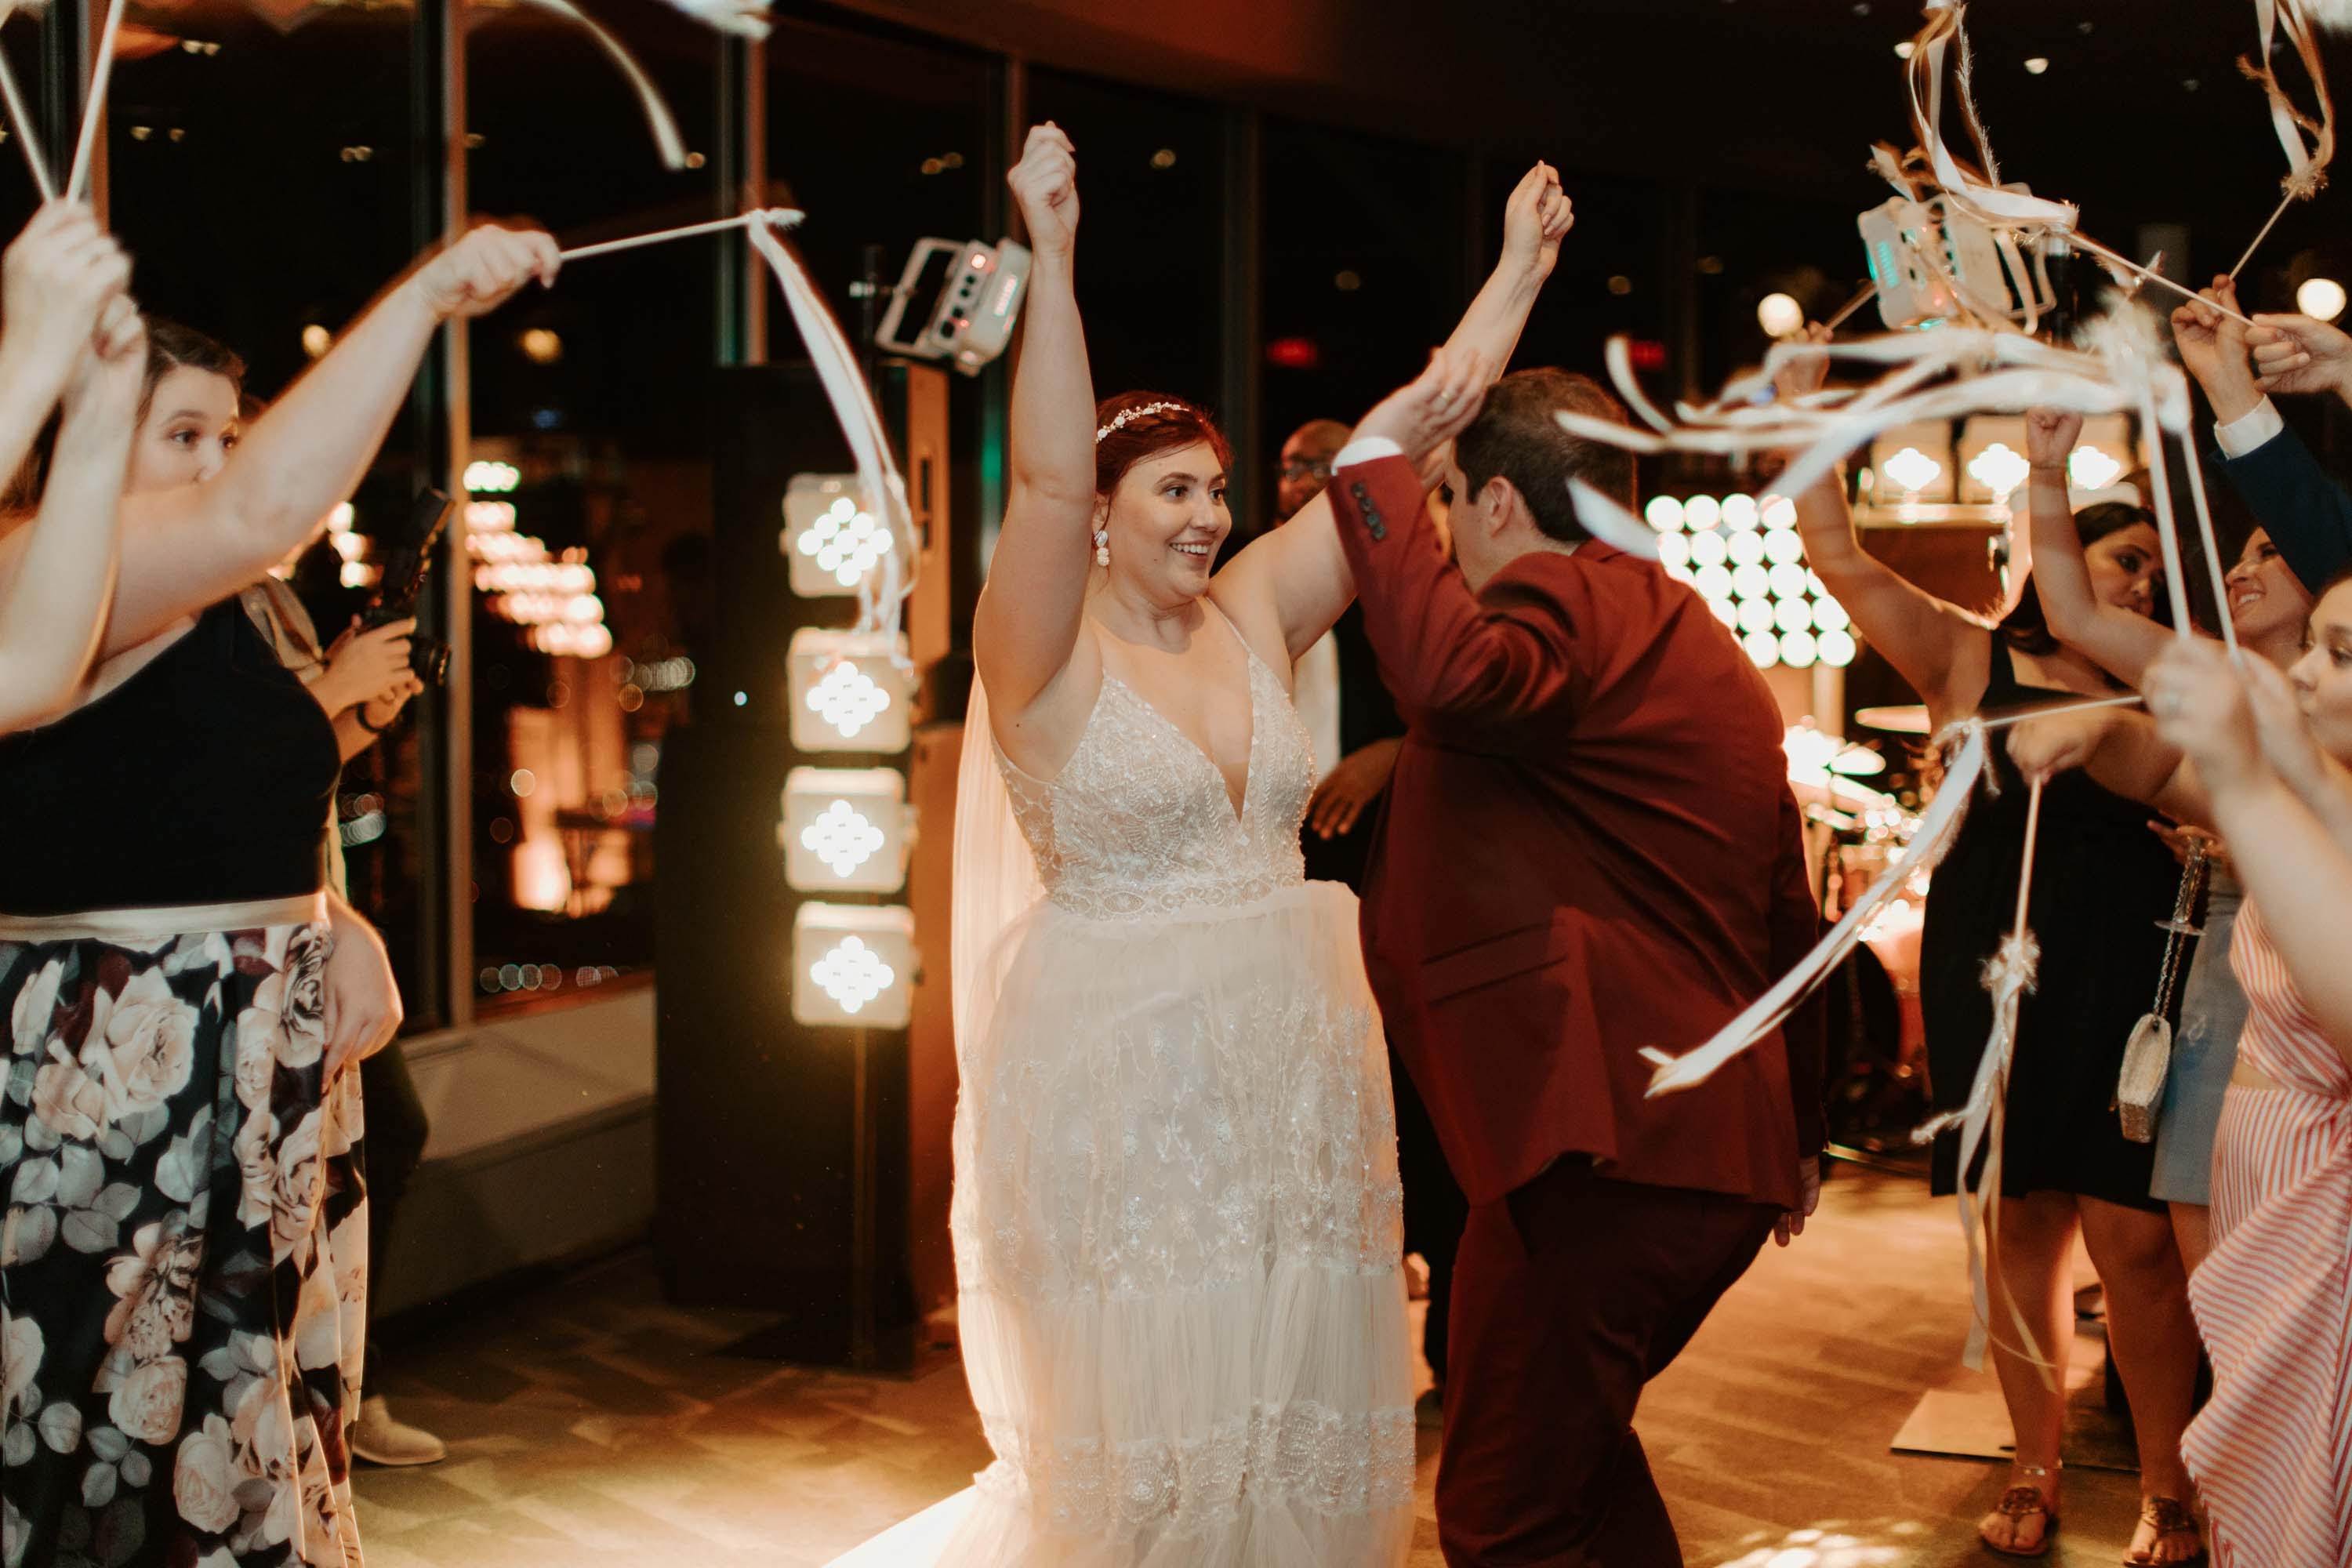 Bride and groom dancing at their wedding reception in Dallas Texas